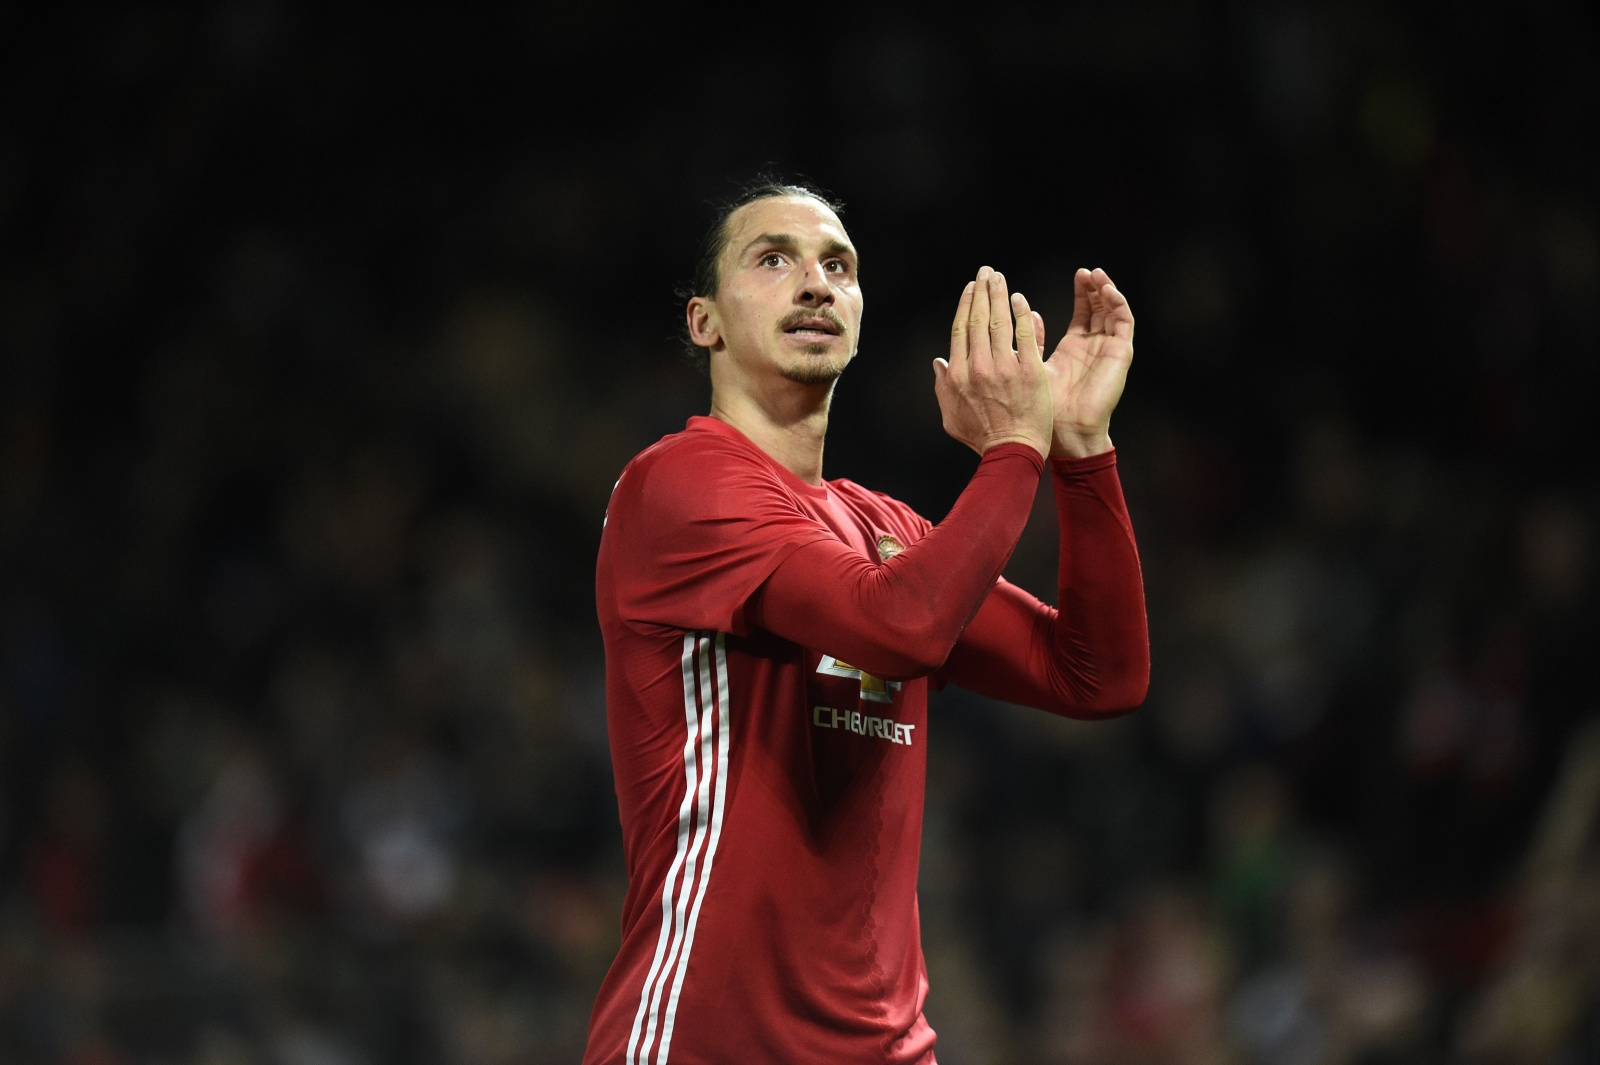 Henry: Manchester United struggling without Zlatan Ibrahimovic39;s goals